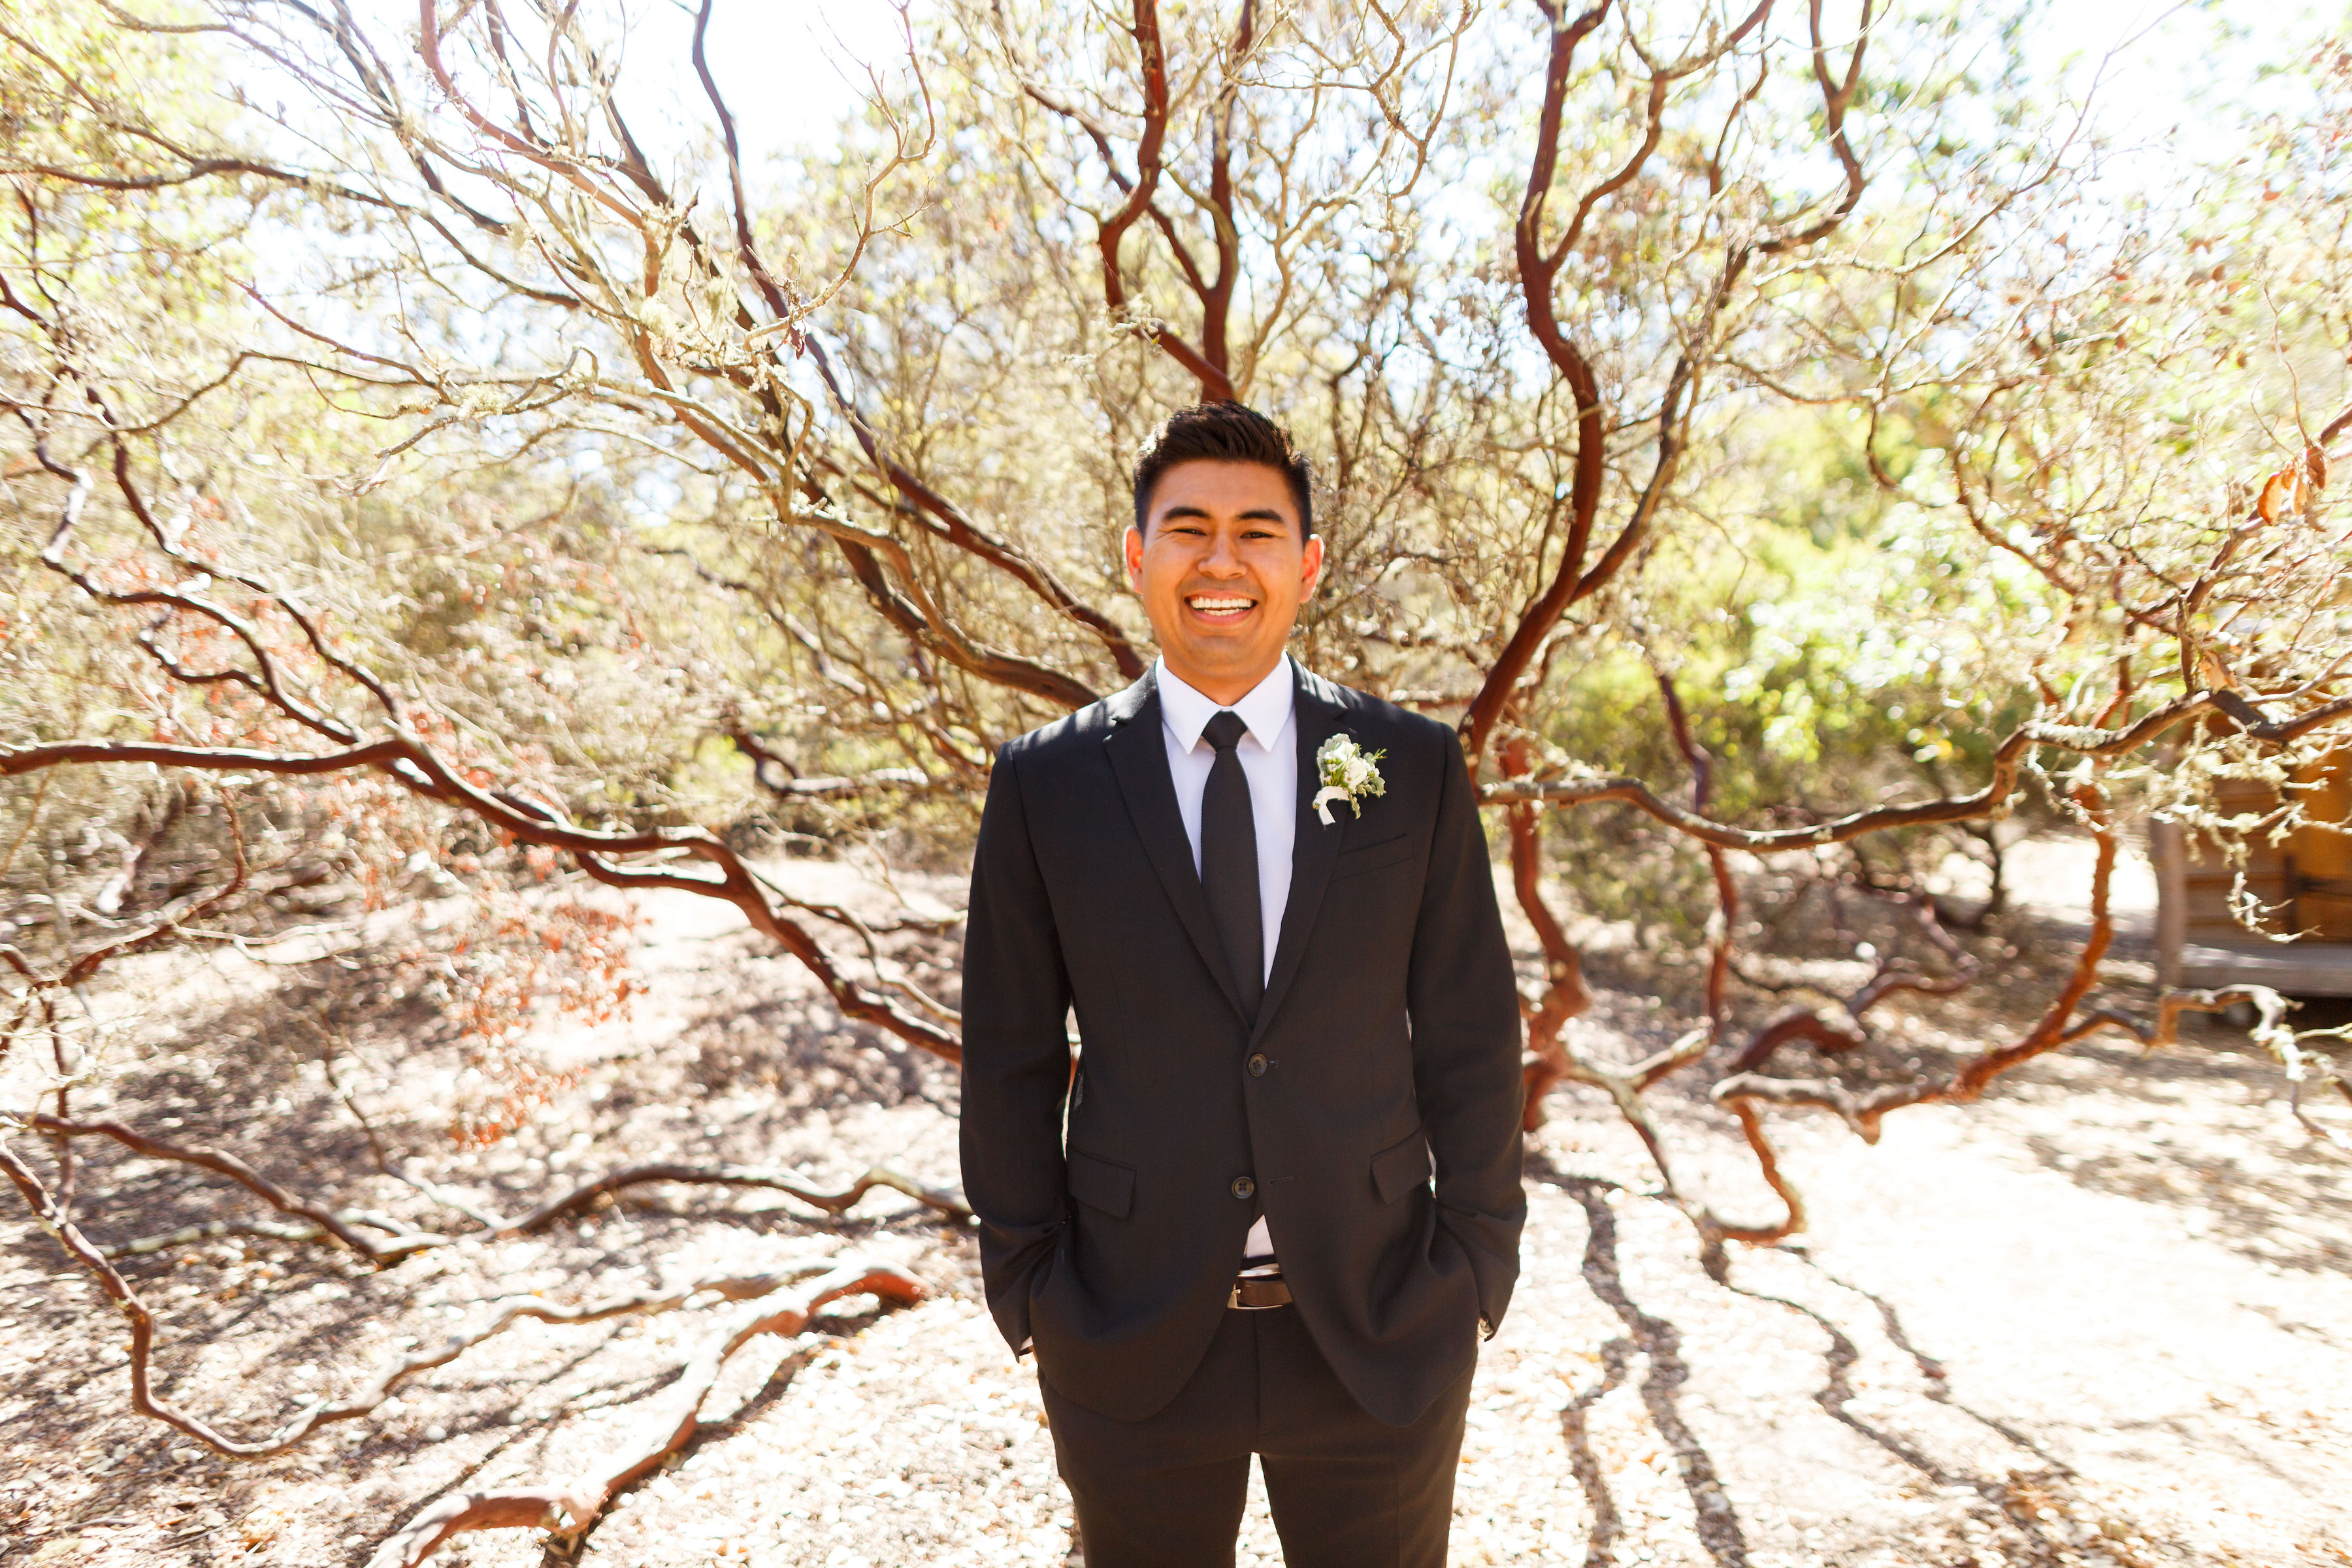 Groom looking handsome at Tiber Canyon Ranch wedding